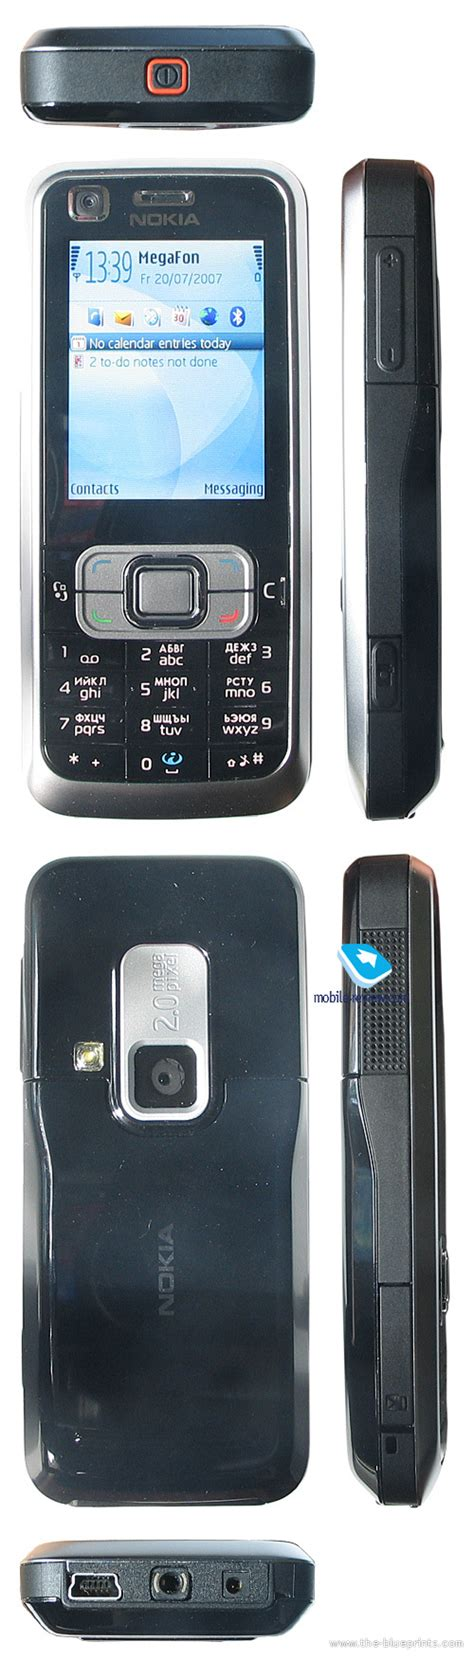 nokia 6120 classic original themes free download the blueprints com blueprints gt phones and tablets